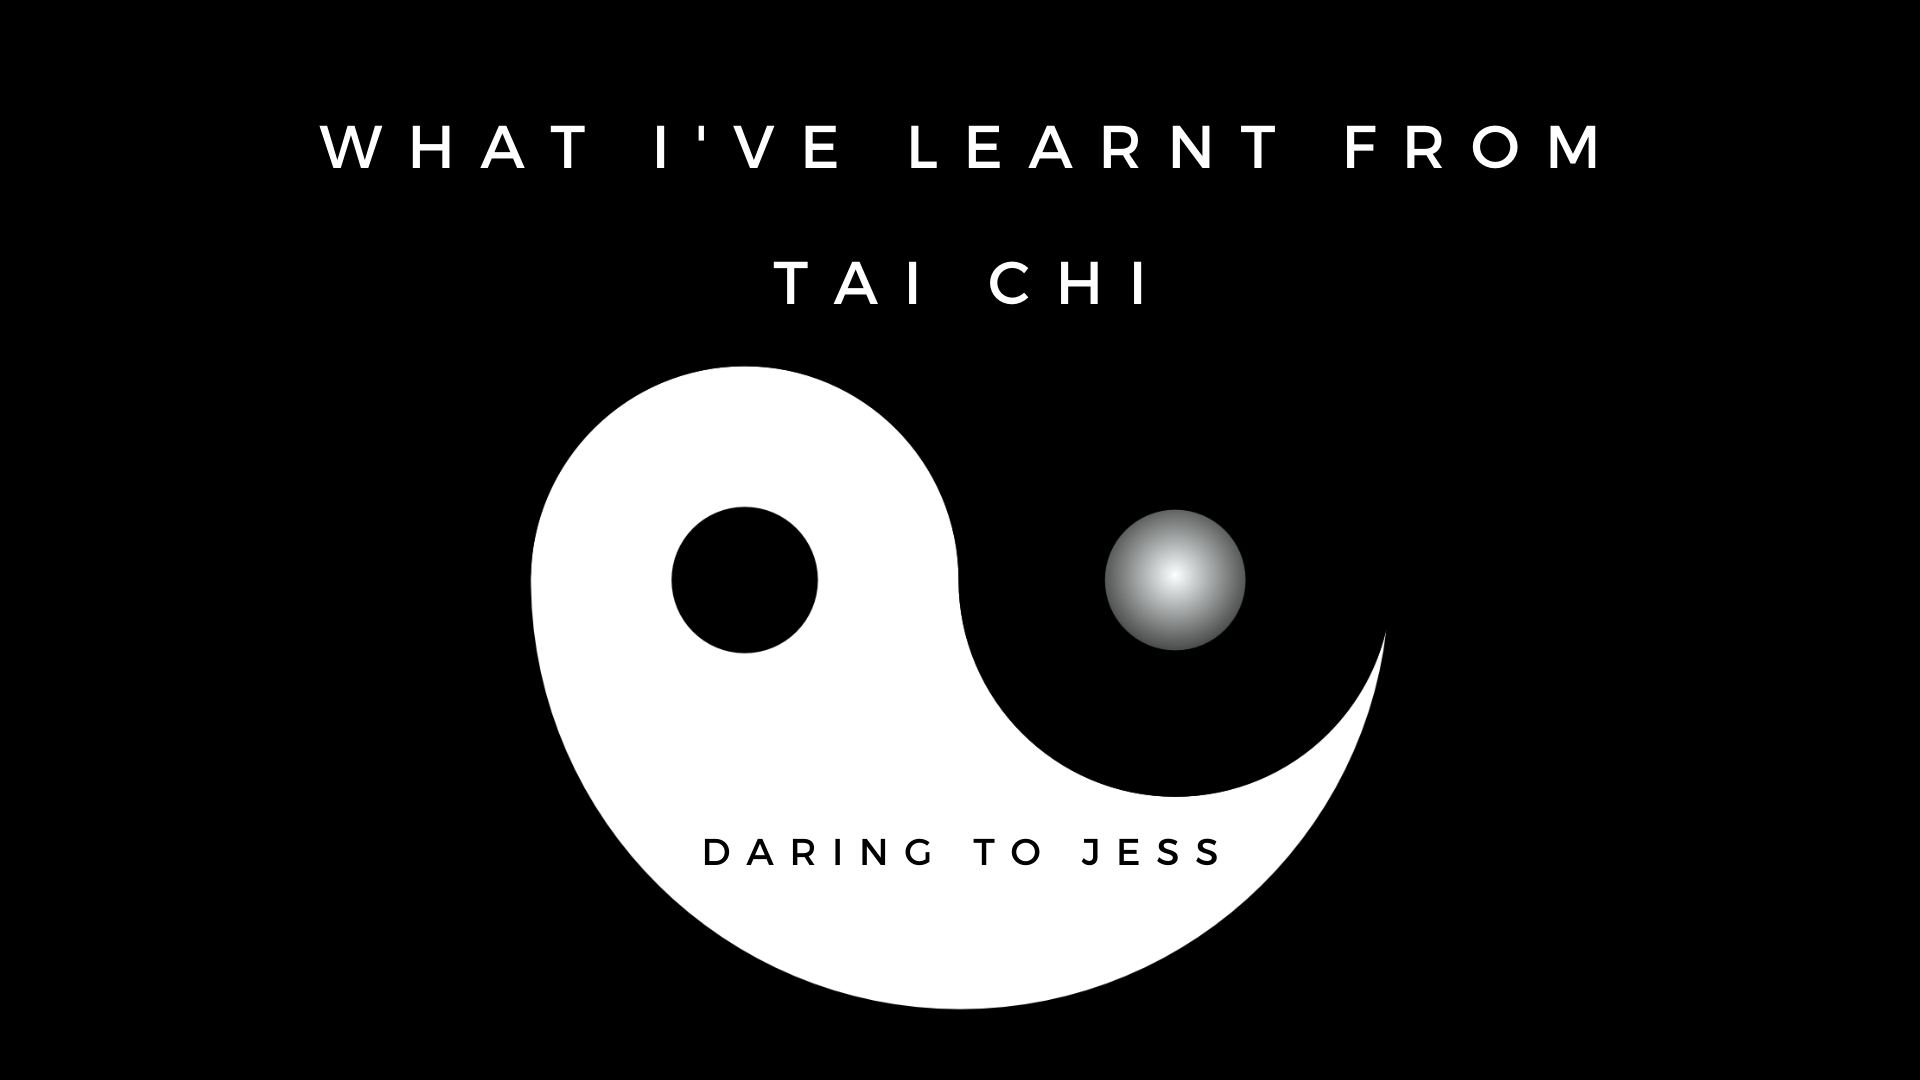 What I've Learnt from Tai Chi